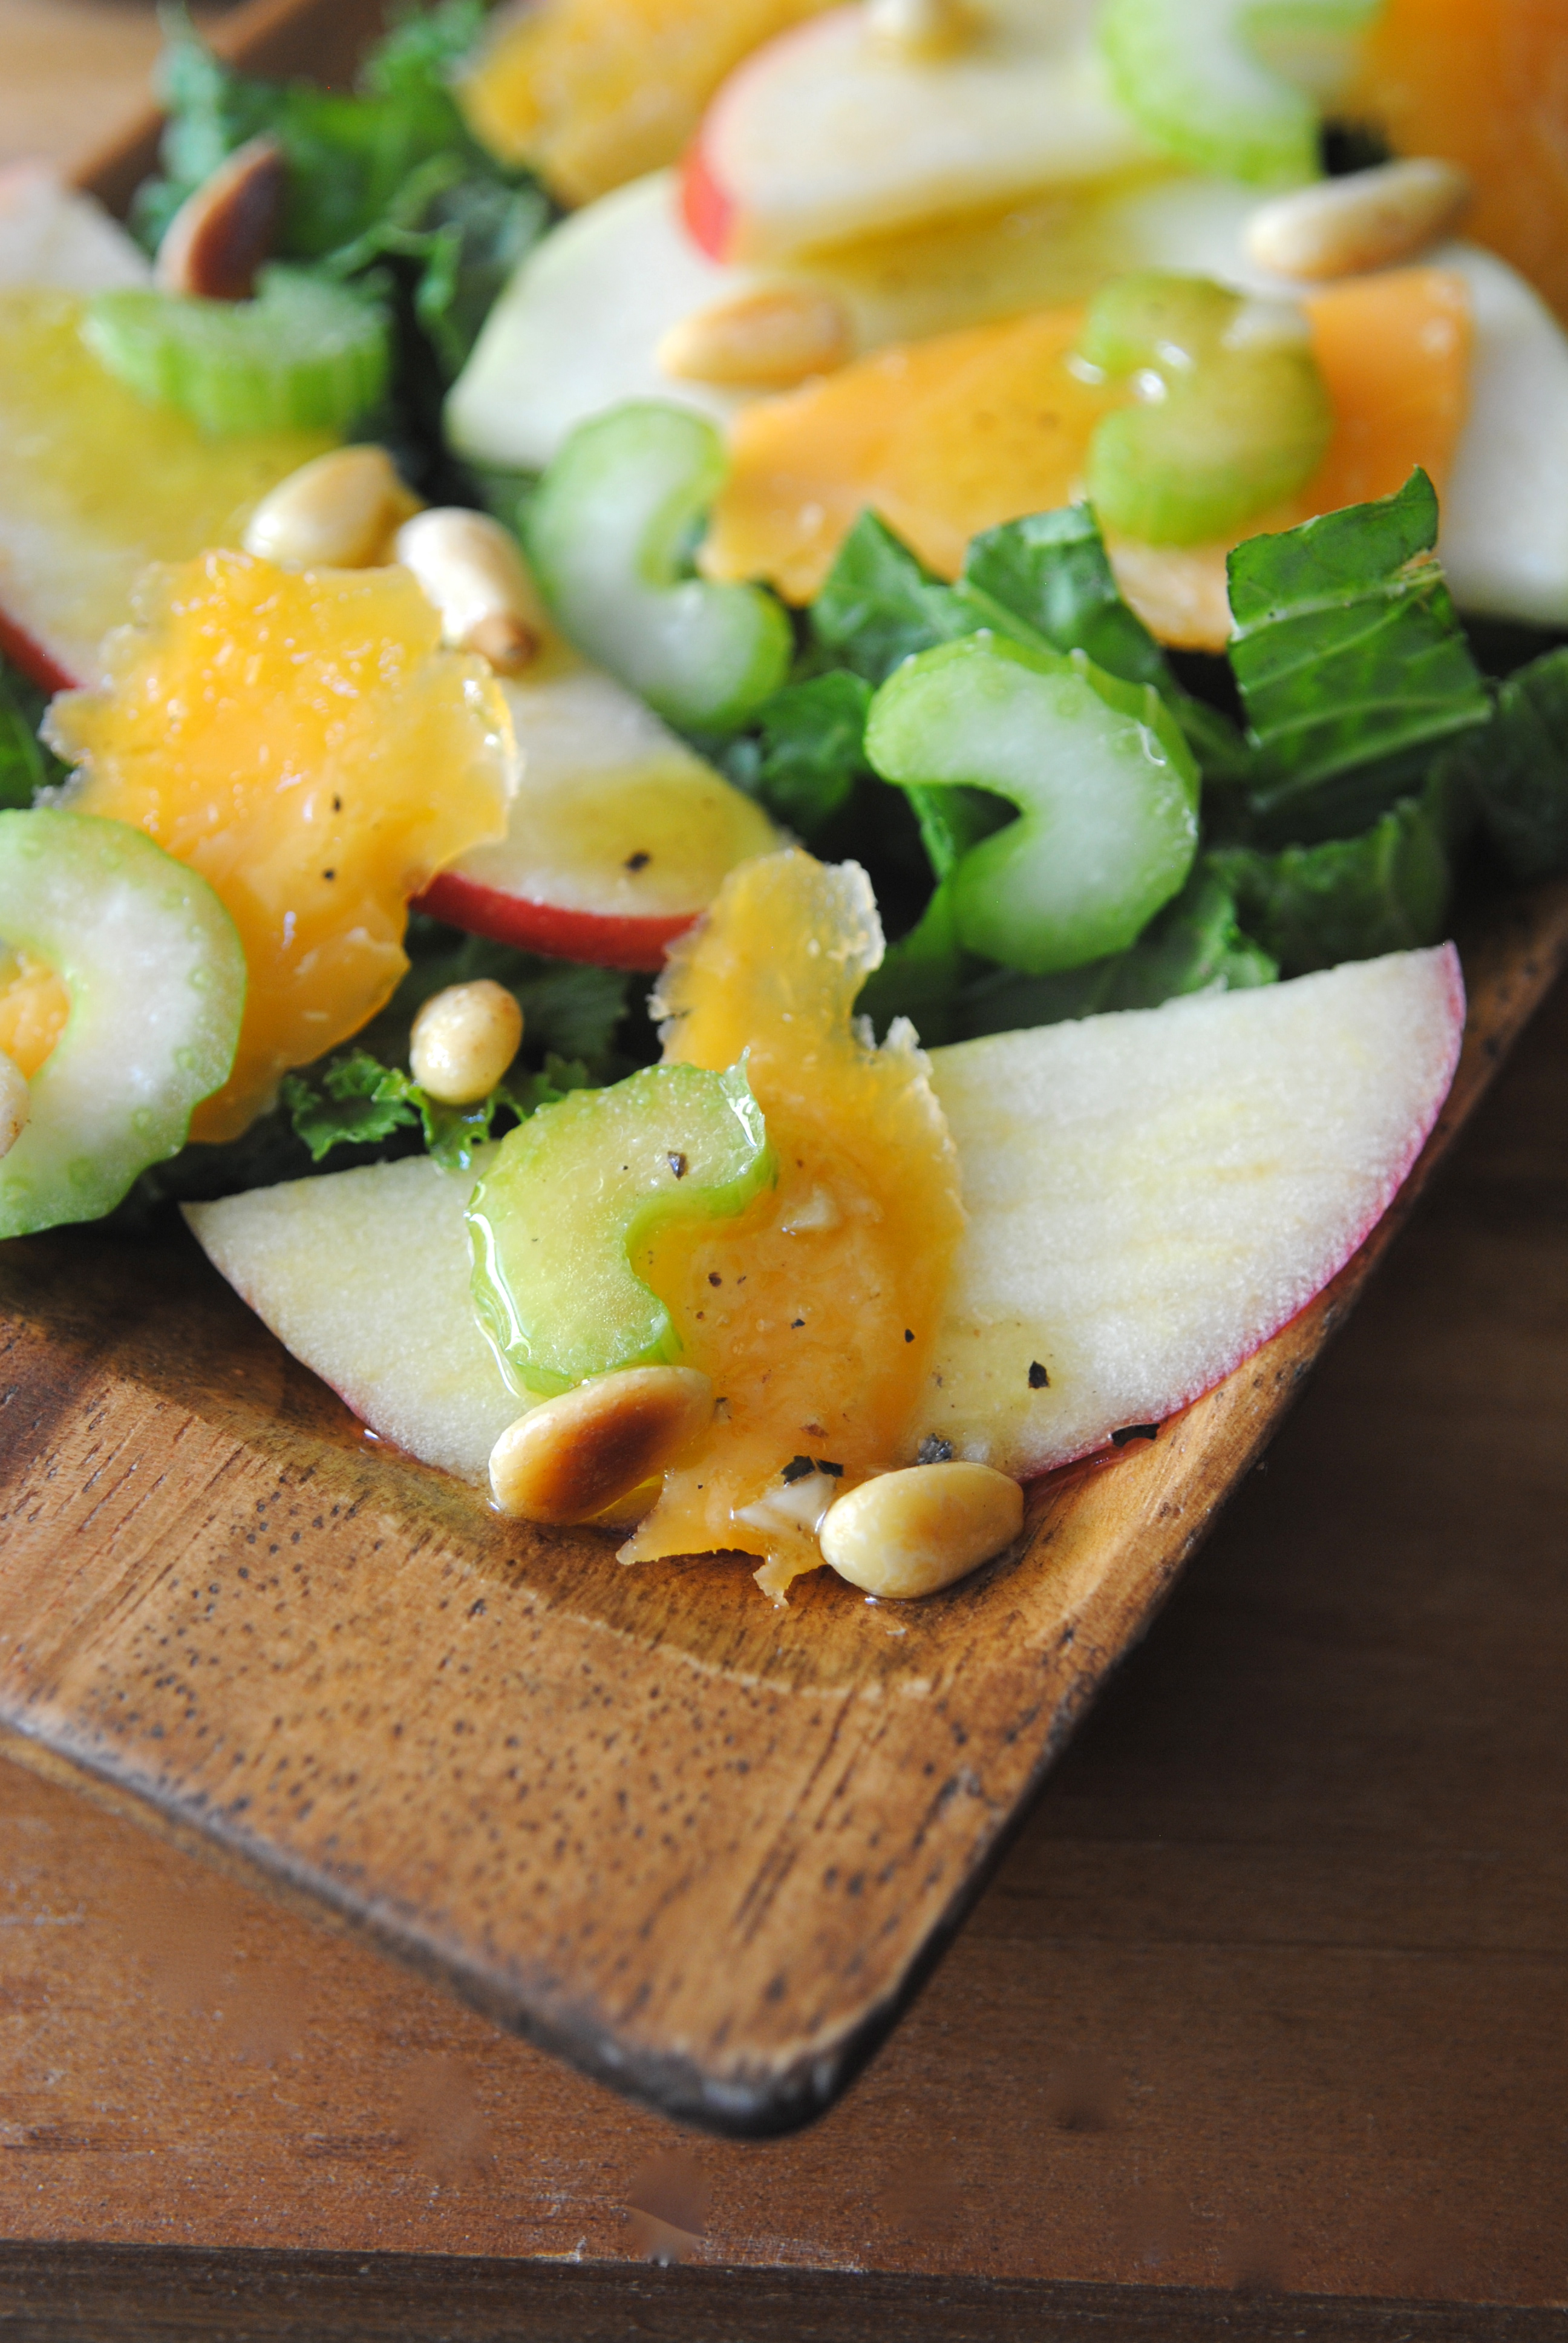 Apple & Cheddar Salad with Mustard Vinaigrette